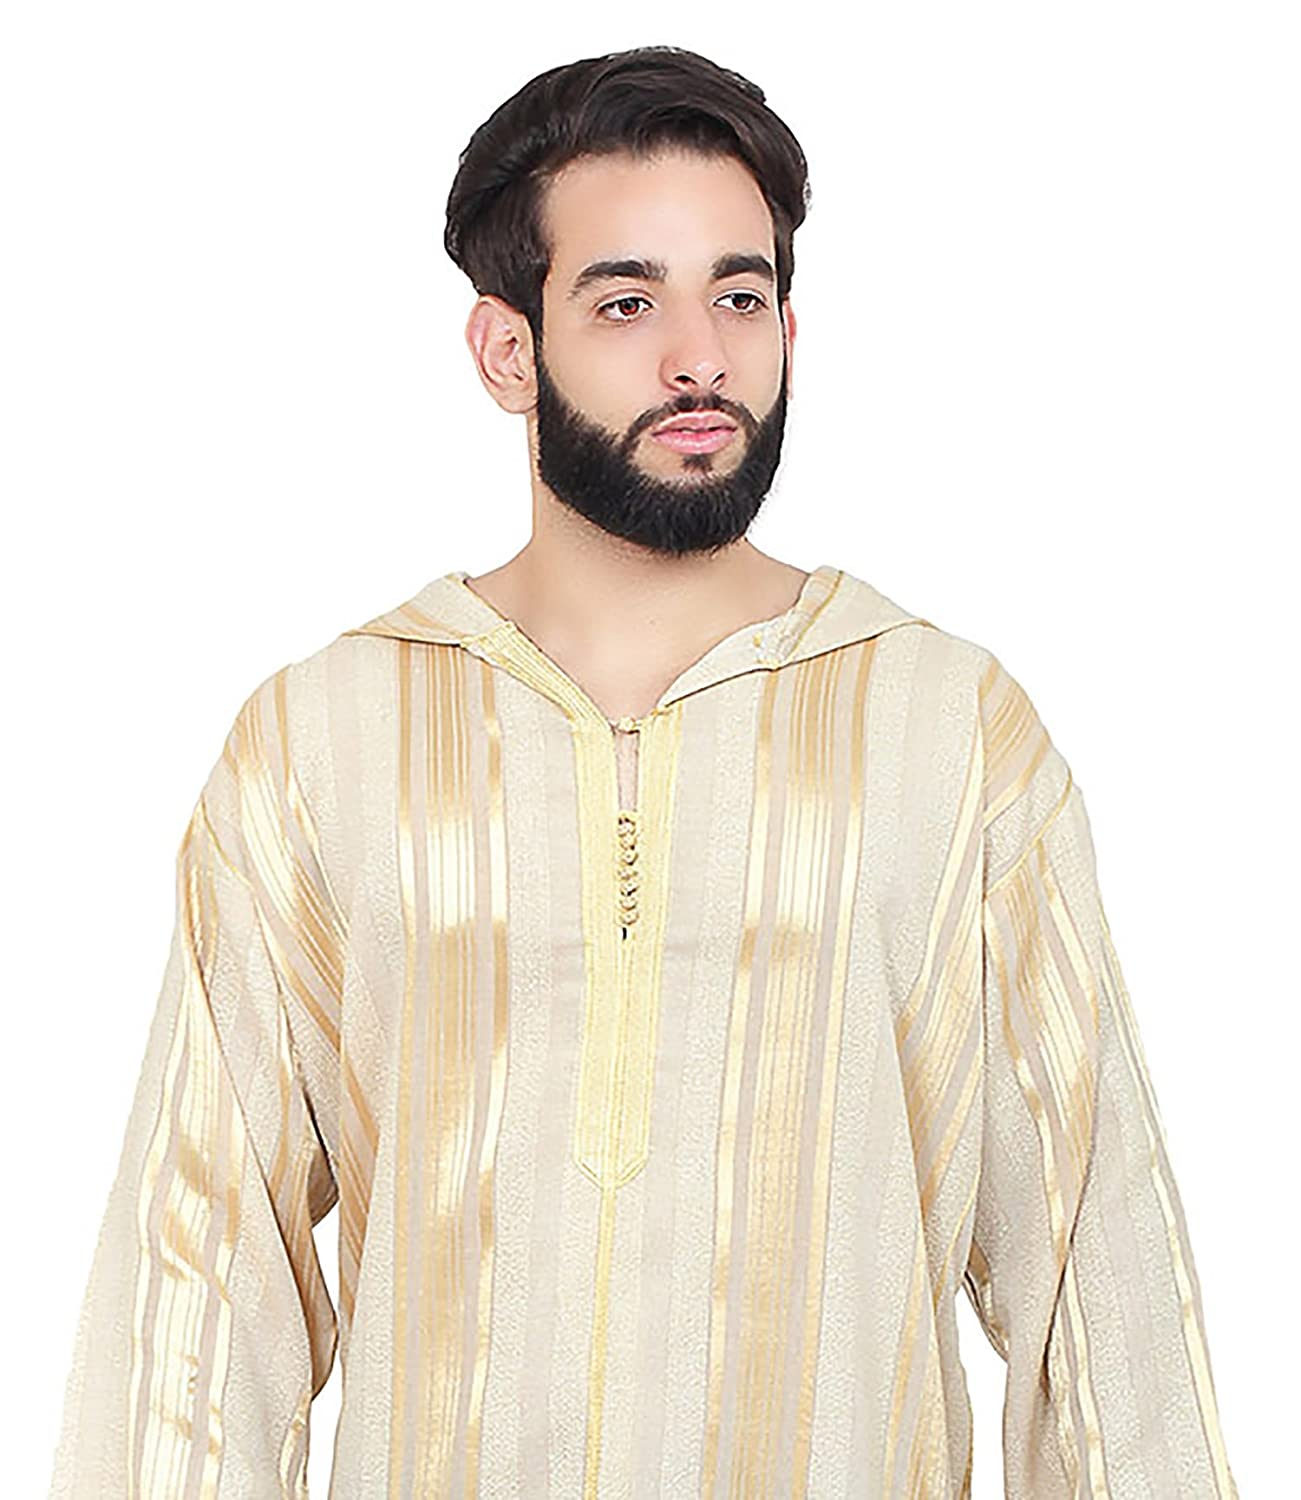 eeae1489108d Amazon.com: Moroccan Men Djellaba Handmade Embroidered Breathable Cotton  Blend hooded Caftan: Clothing